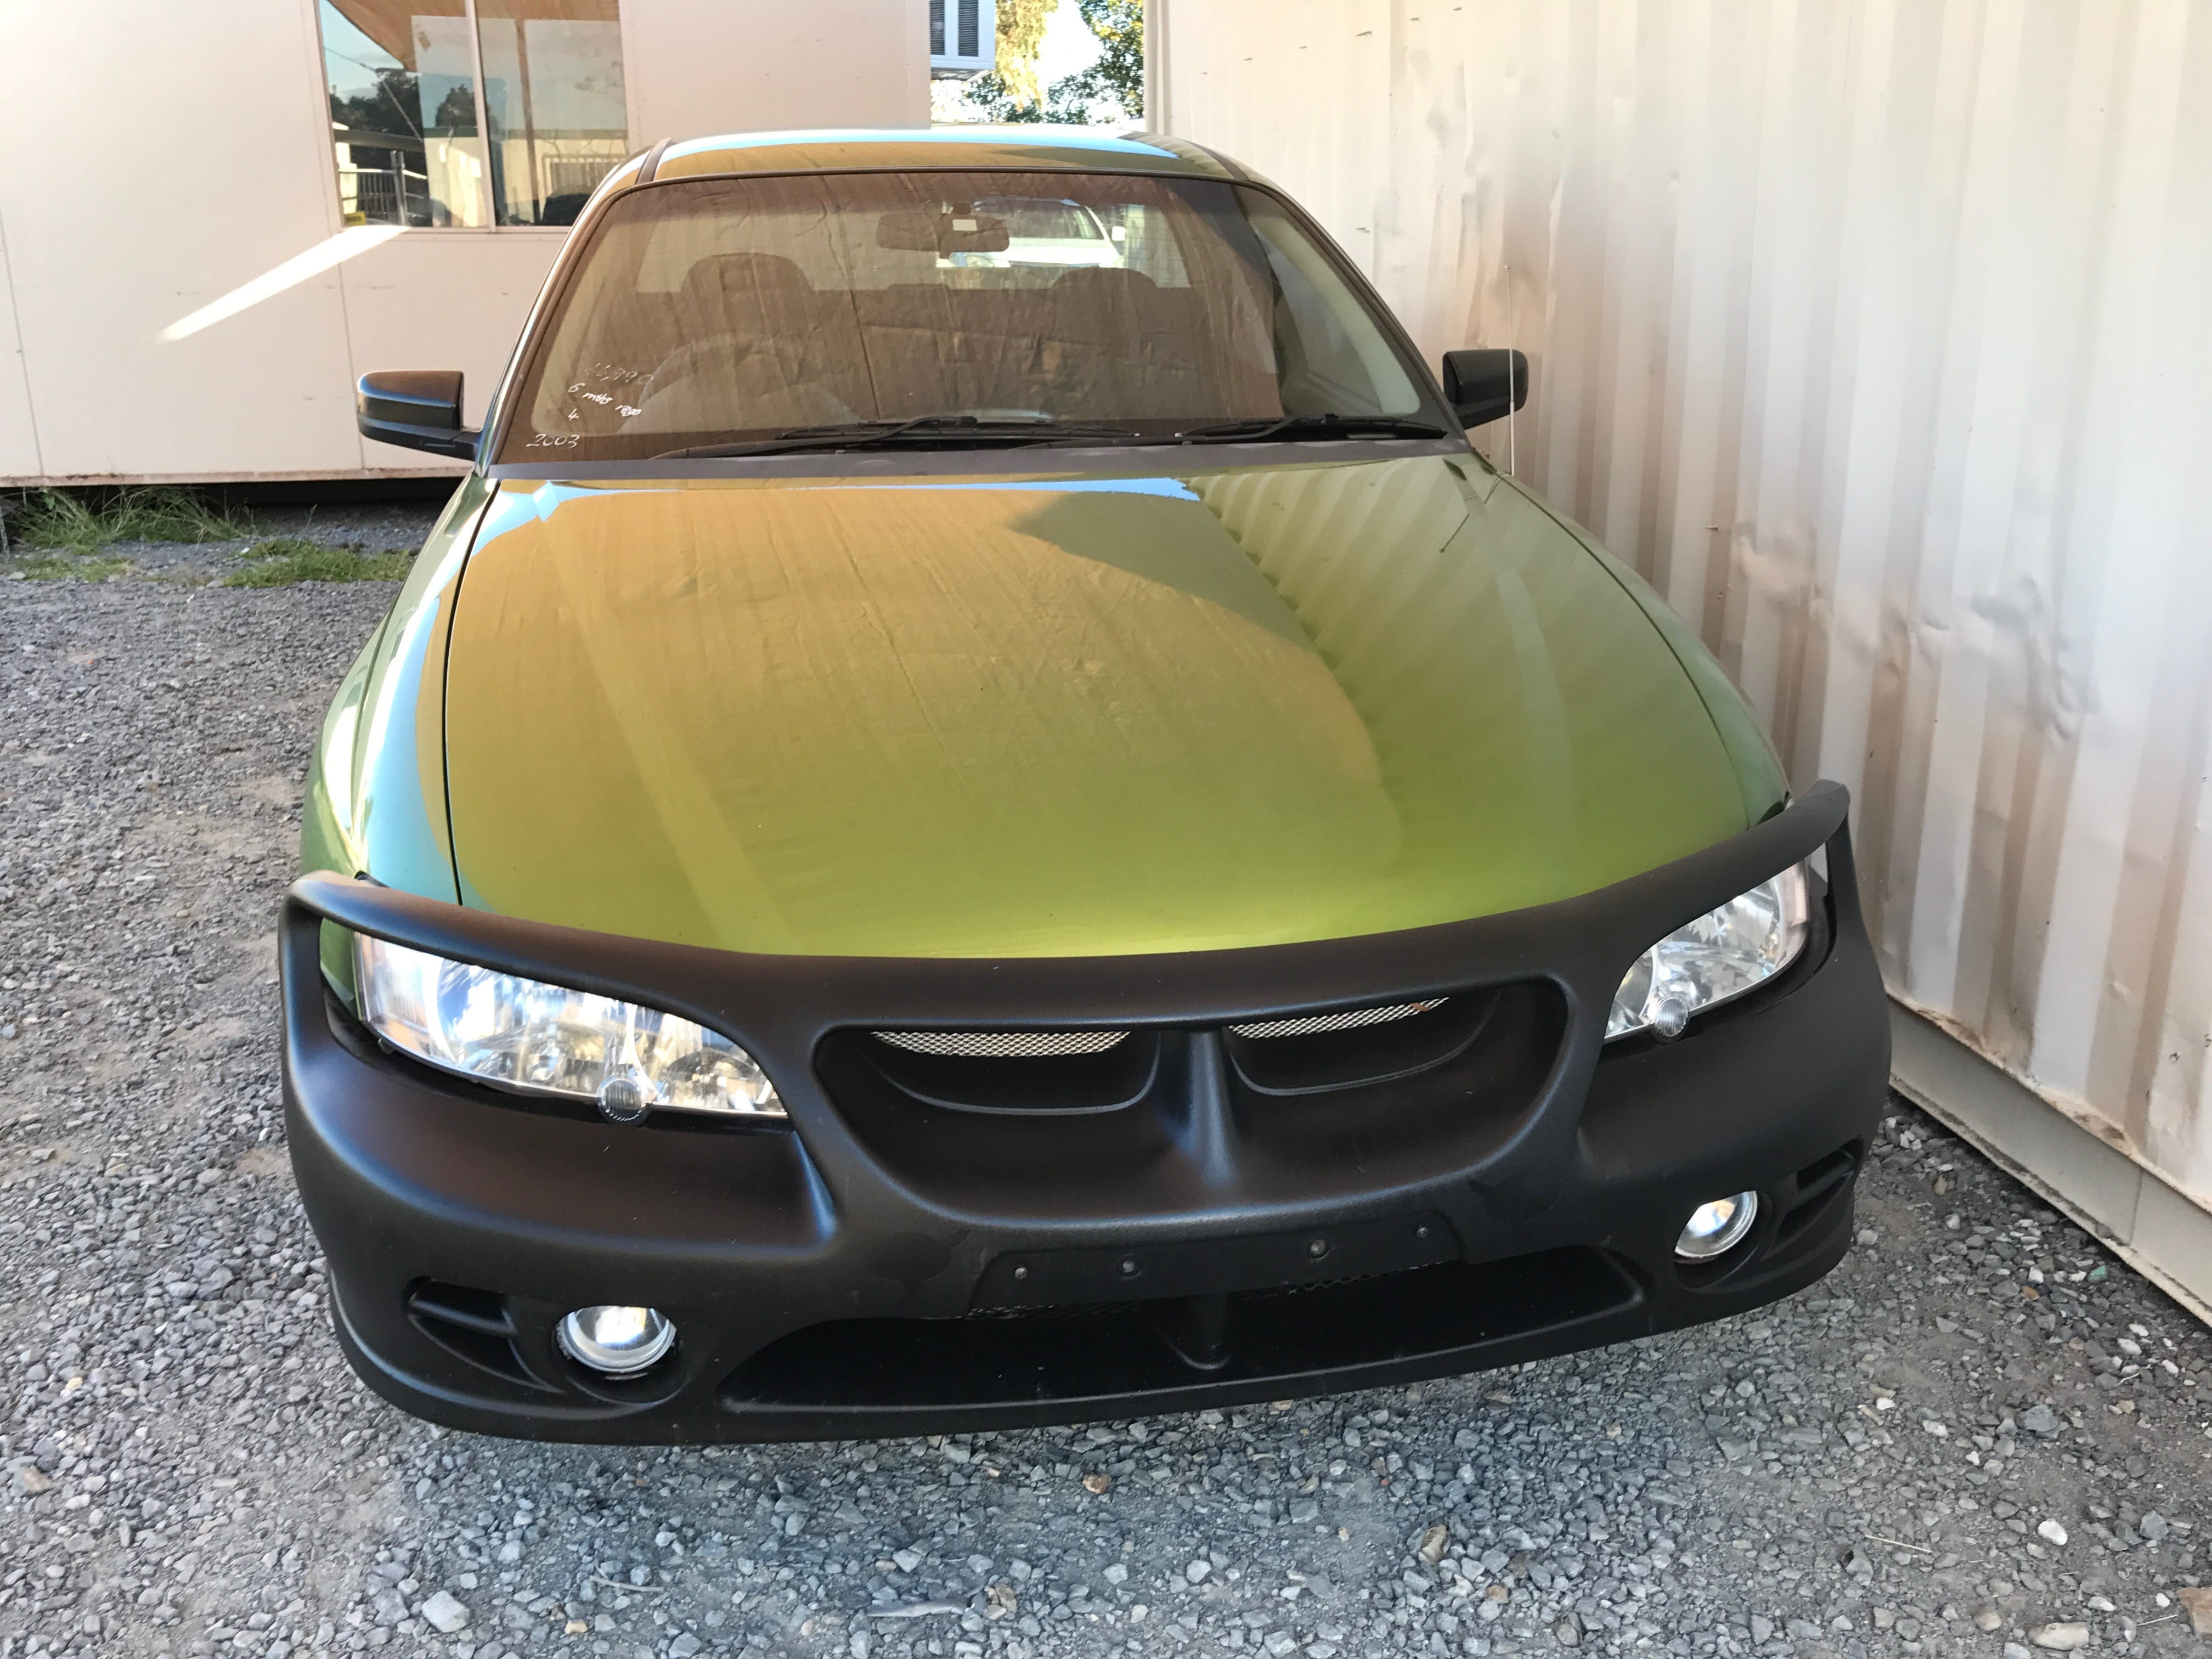 Manual Commodore Ute VY 6 cylinder with hardlid 2003 for sale 2-min